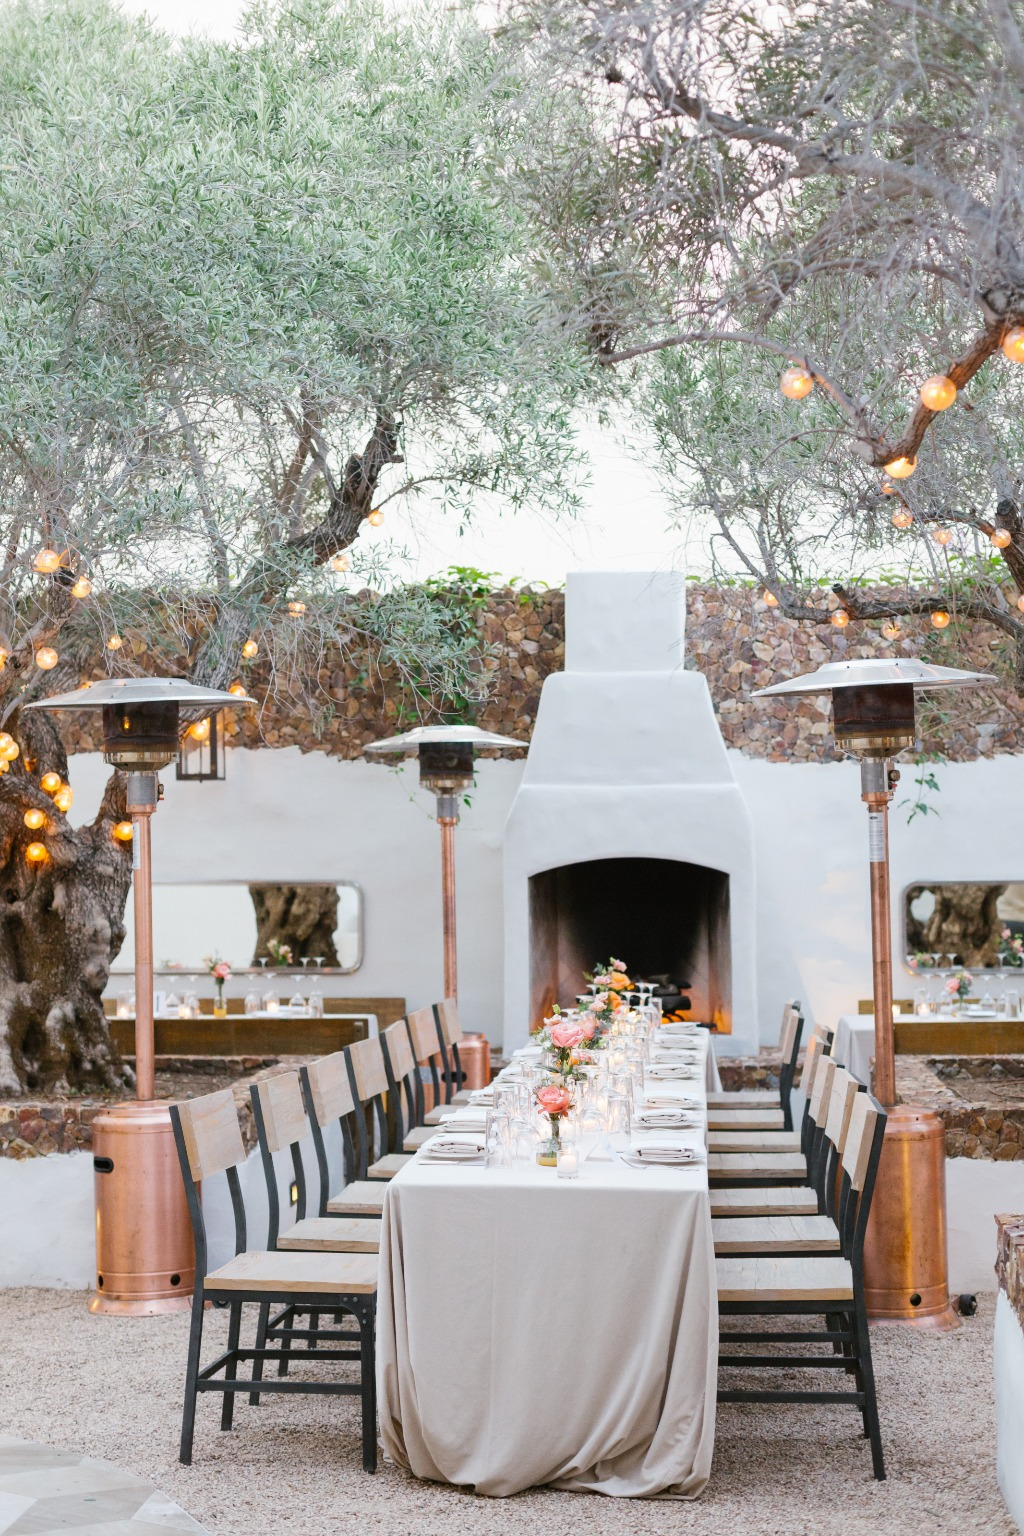 Beautiful reception at Smithy restaurant in Santa Barbara! The candles and palette of peach and pink florals made for a gorgeous evening